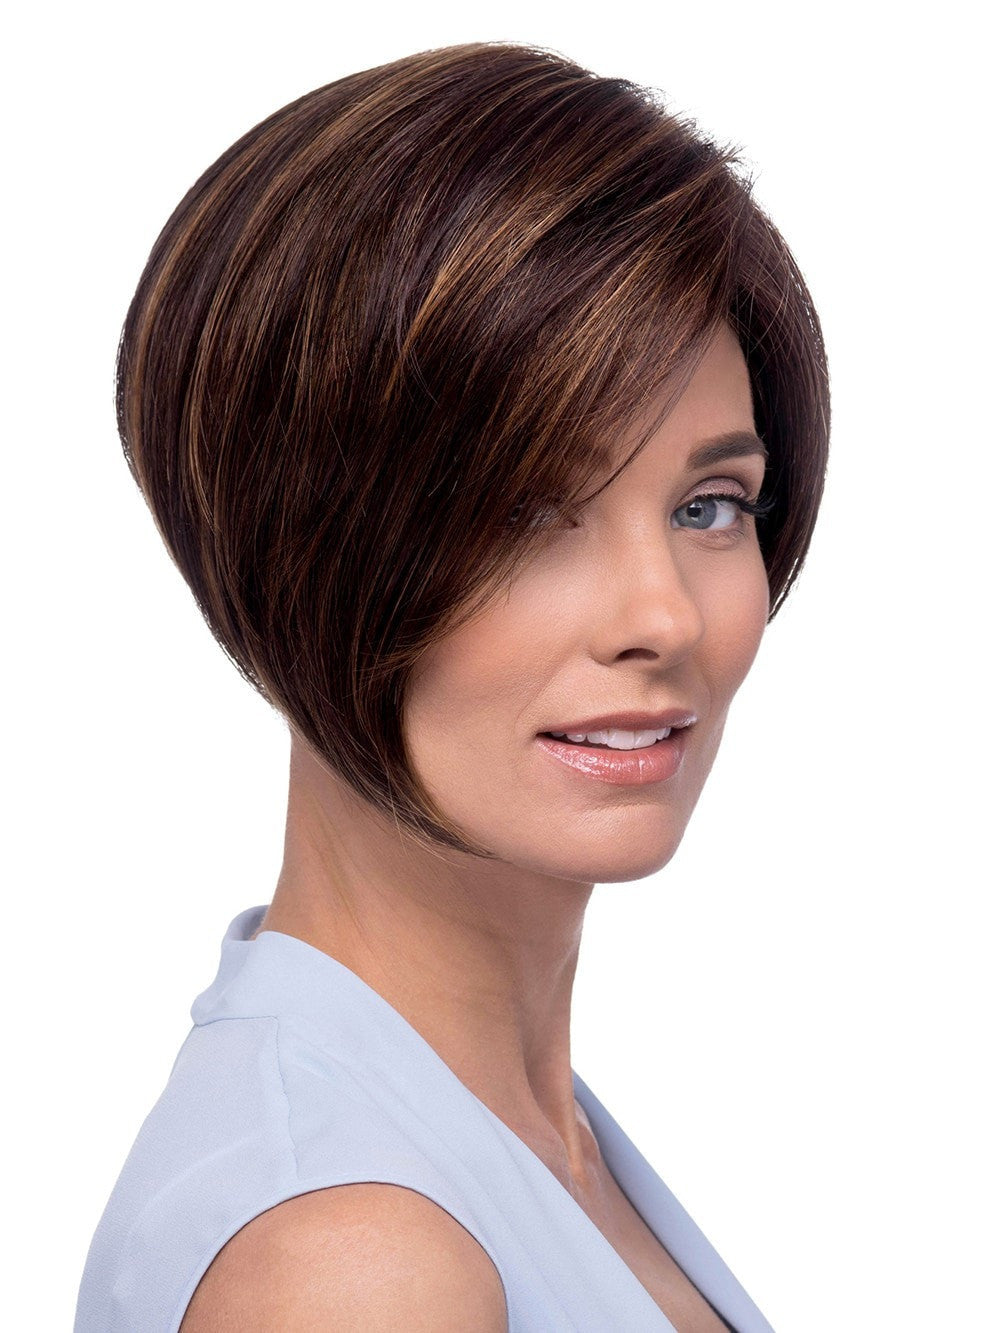 Short asymmetrical layered bob